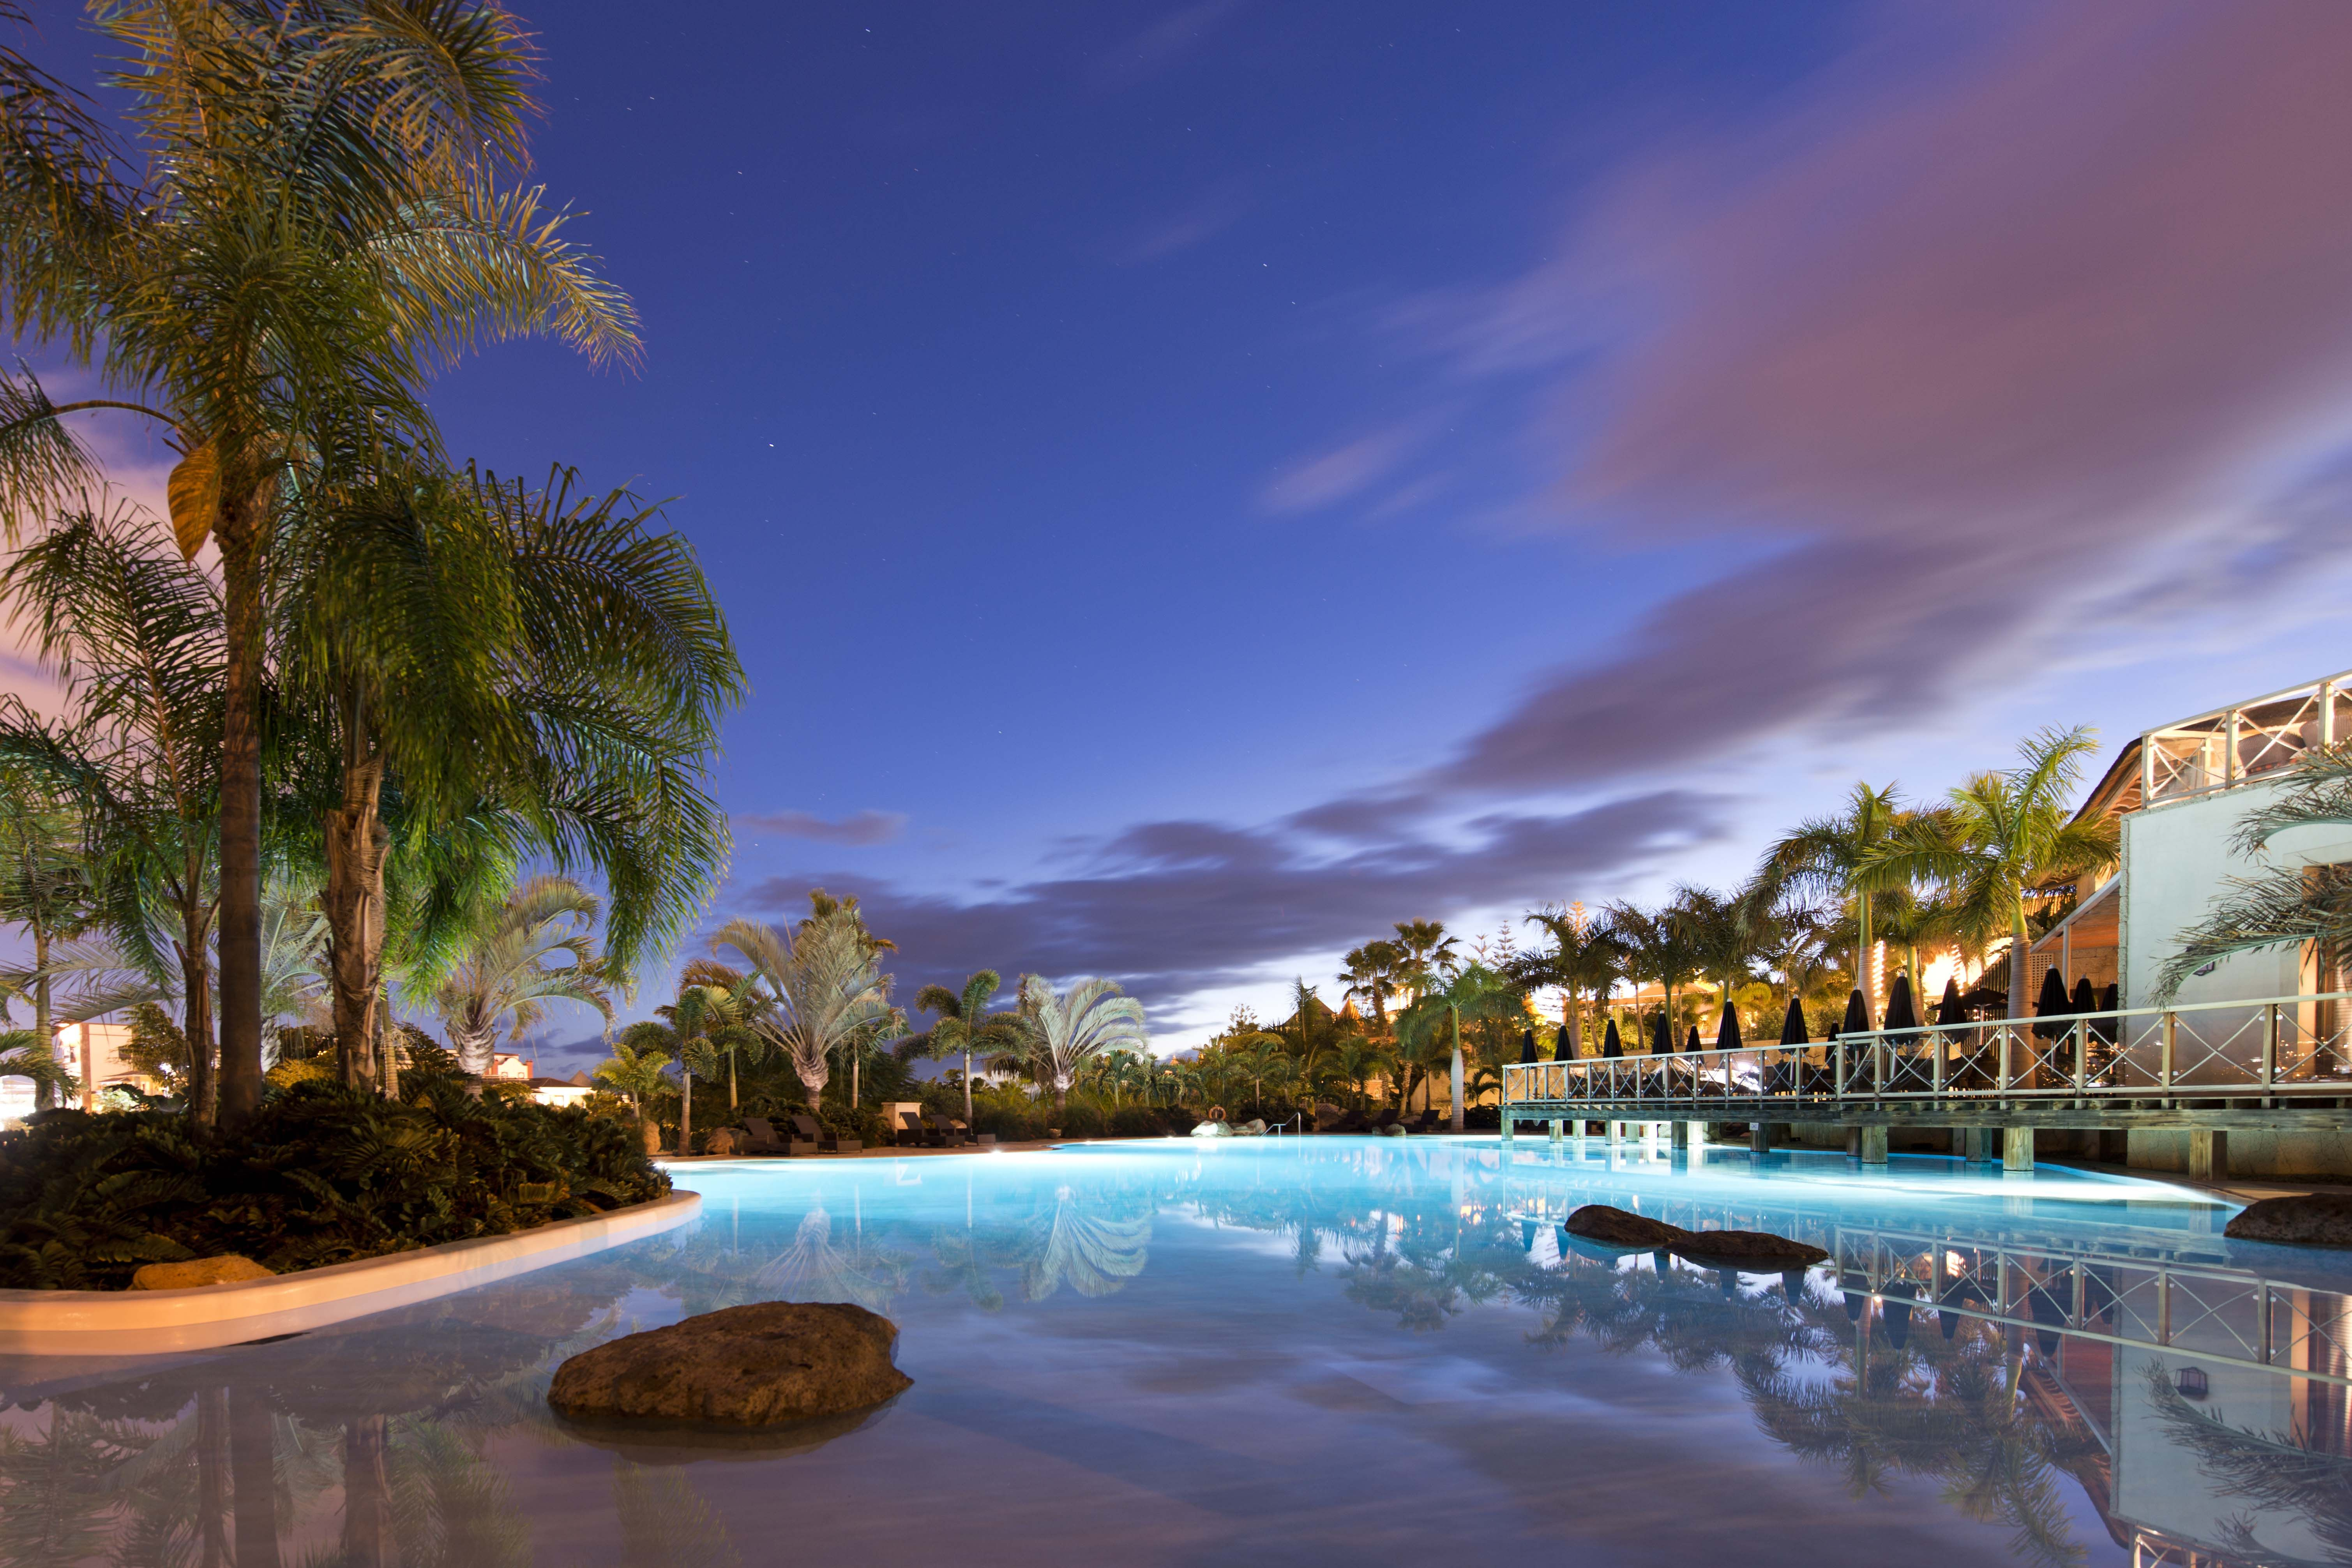 The best resort to spend your Tenerife Holidays! Best